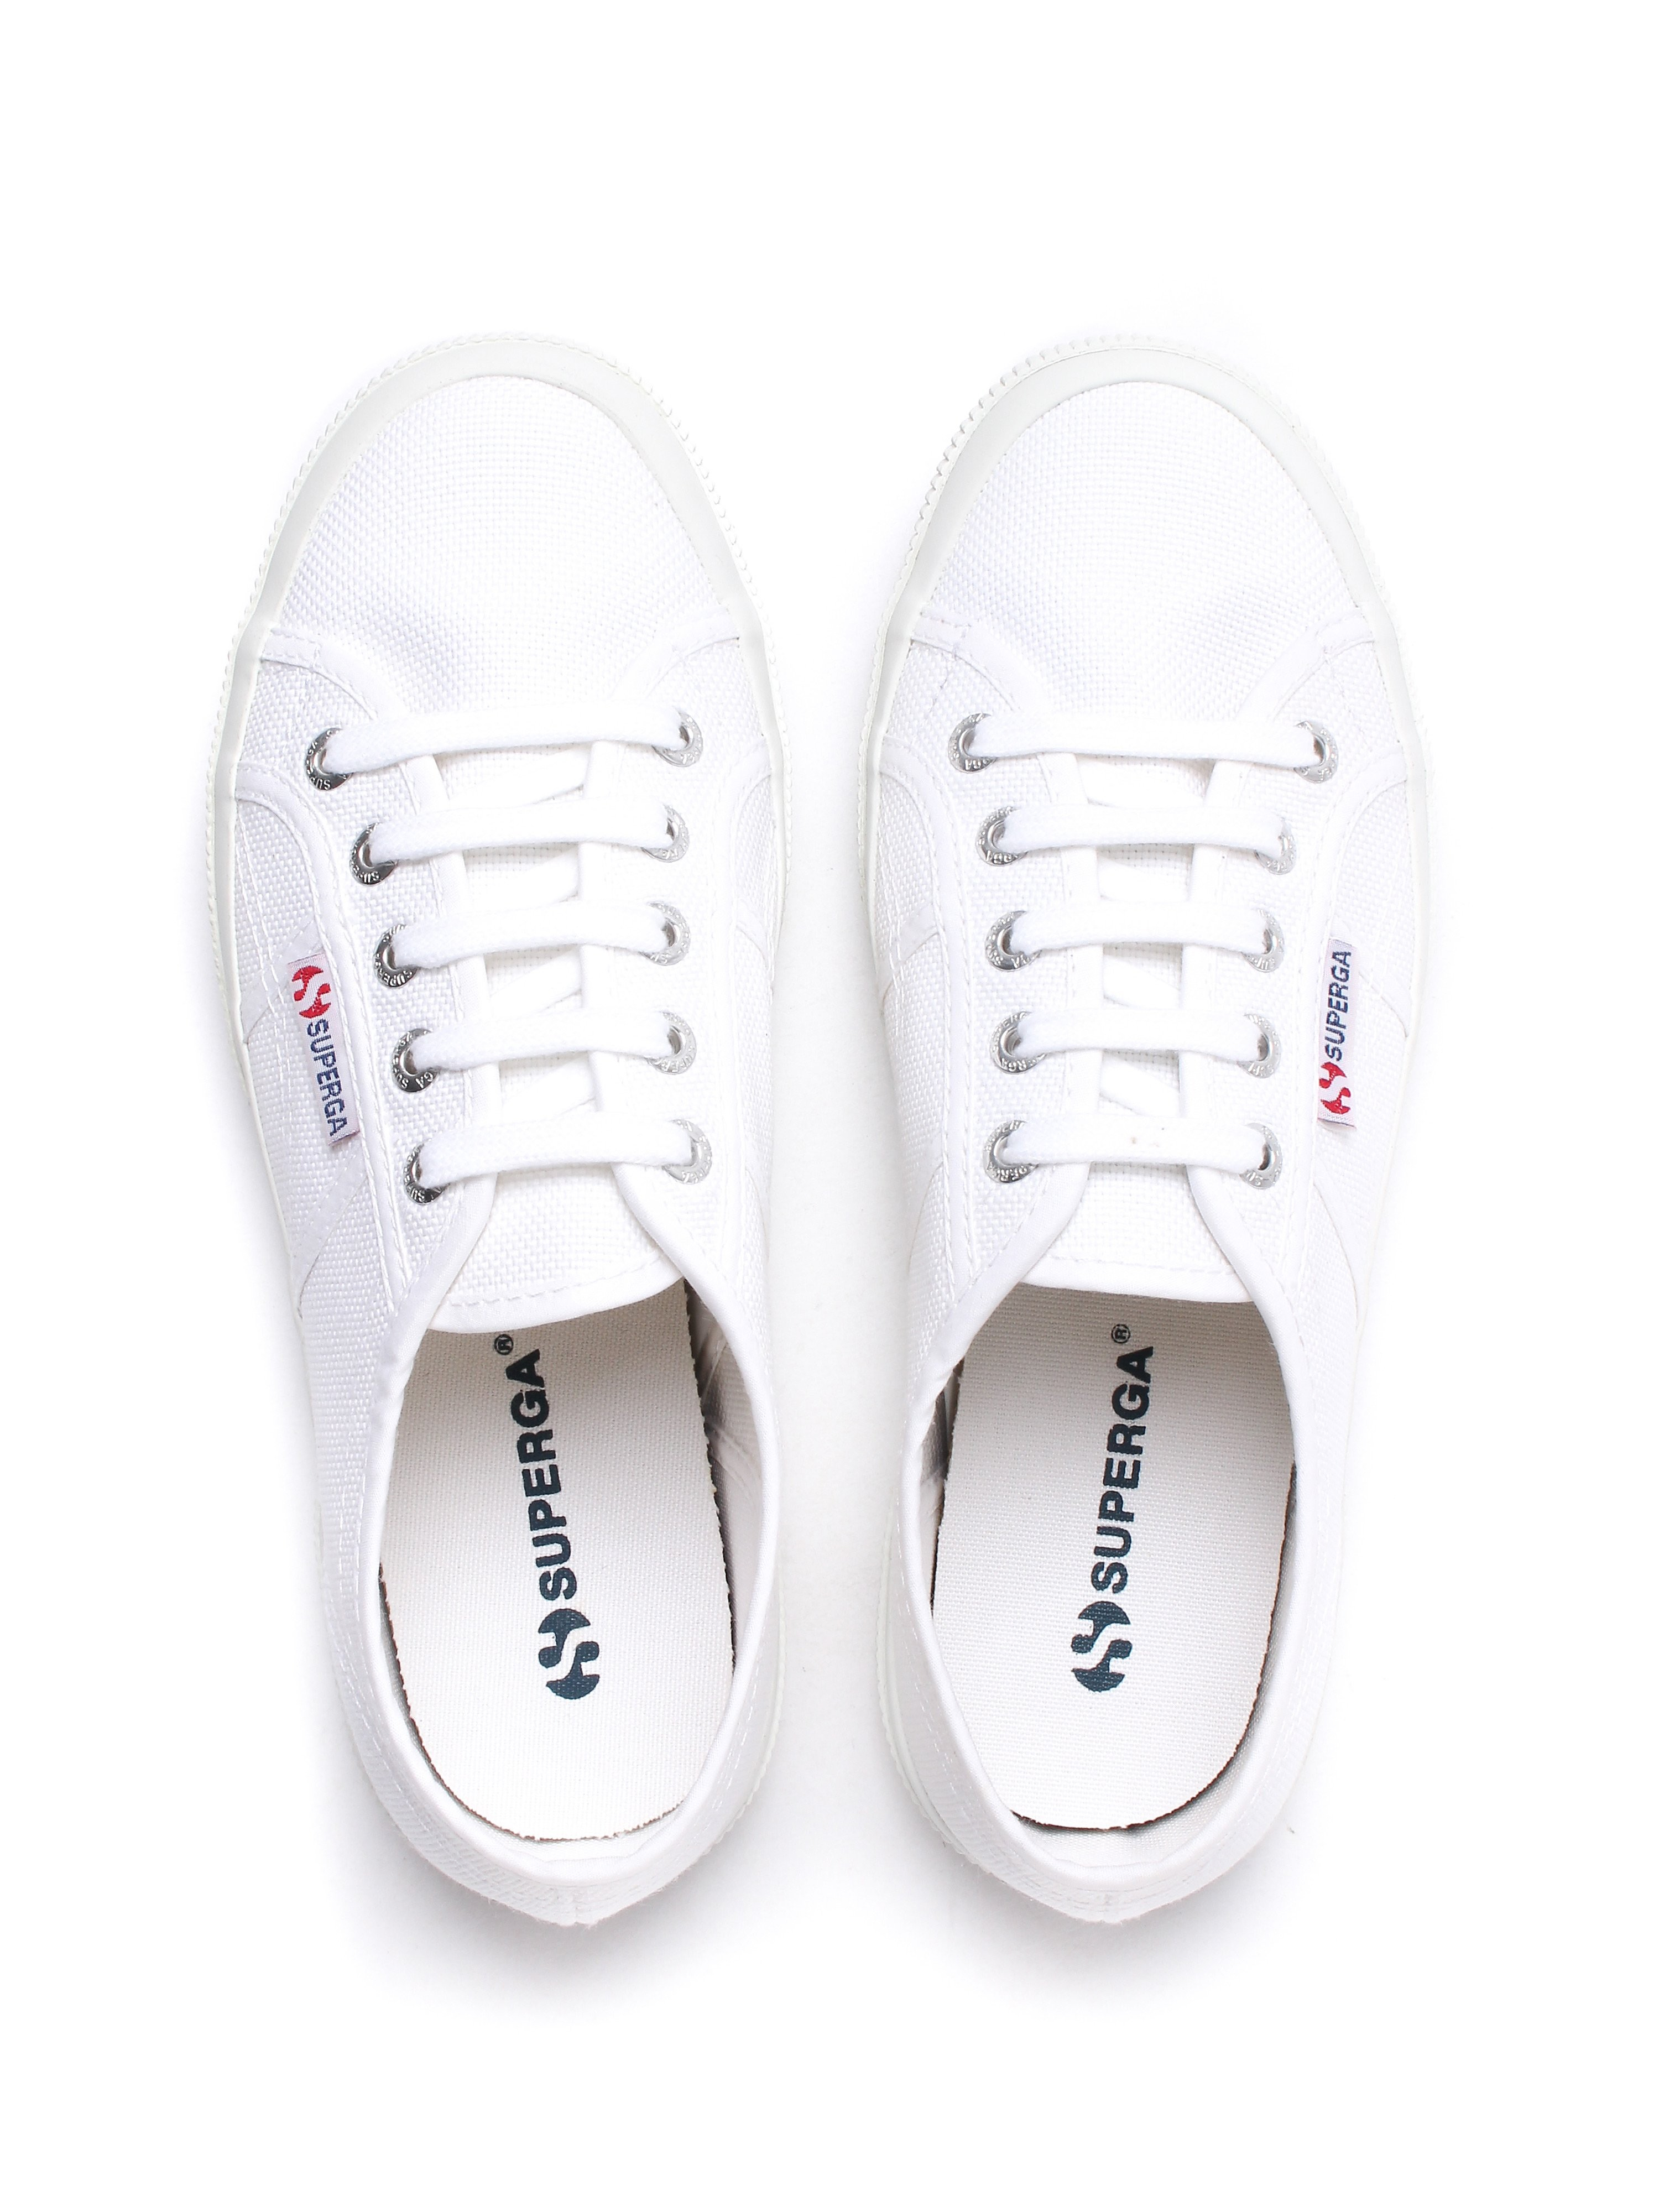 Superga Women's 2750 Cotu Classic Canvas Trainers - White